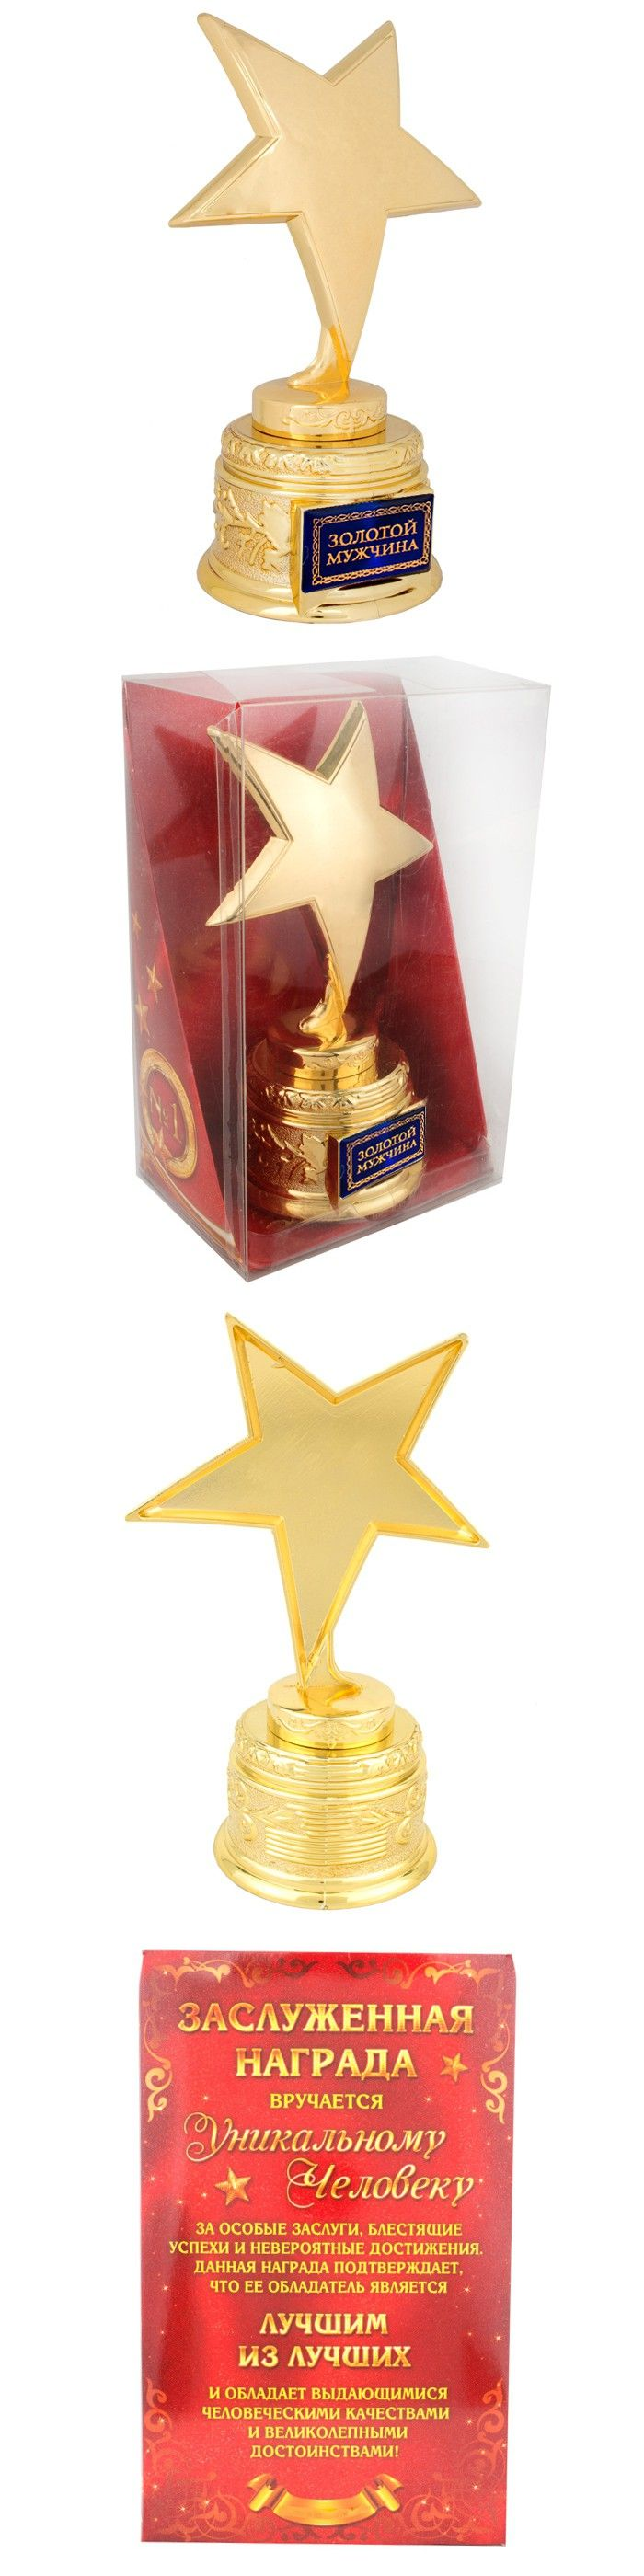 Retro star trophy,home decoration. vintage trophy. gift box craft. medal for male star. Star Medal art for women/men $15.58